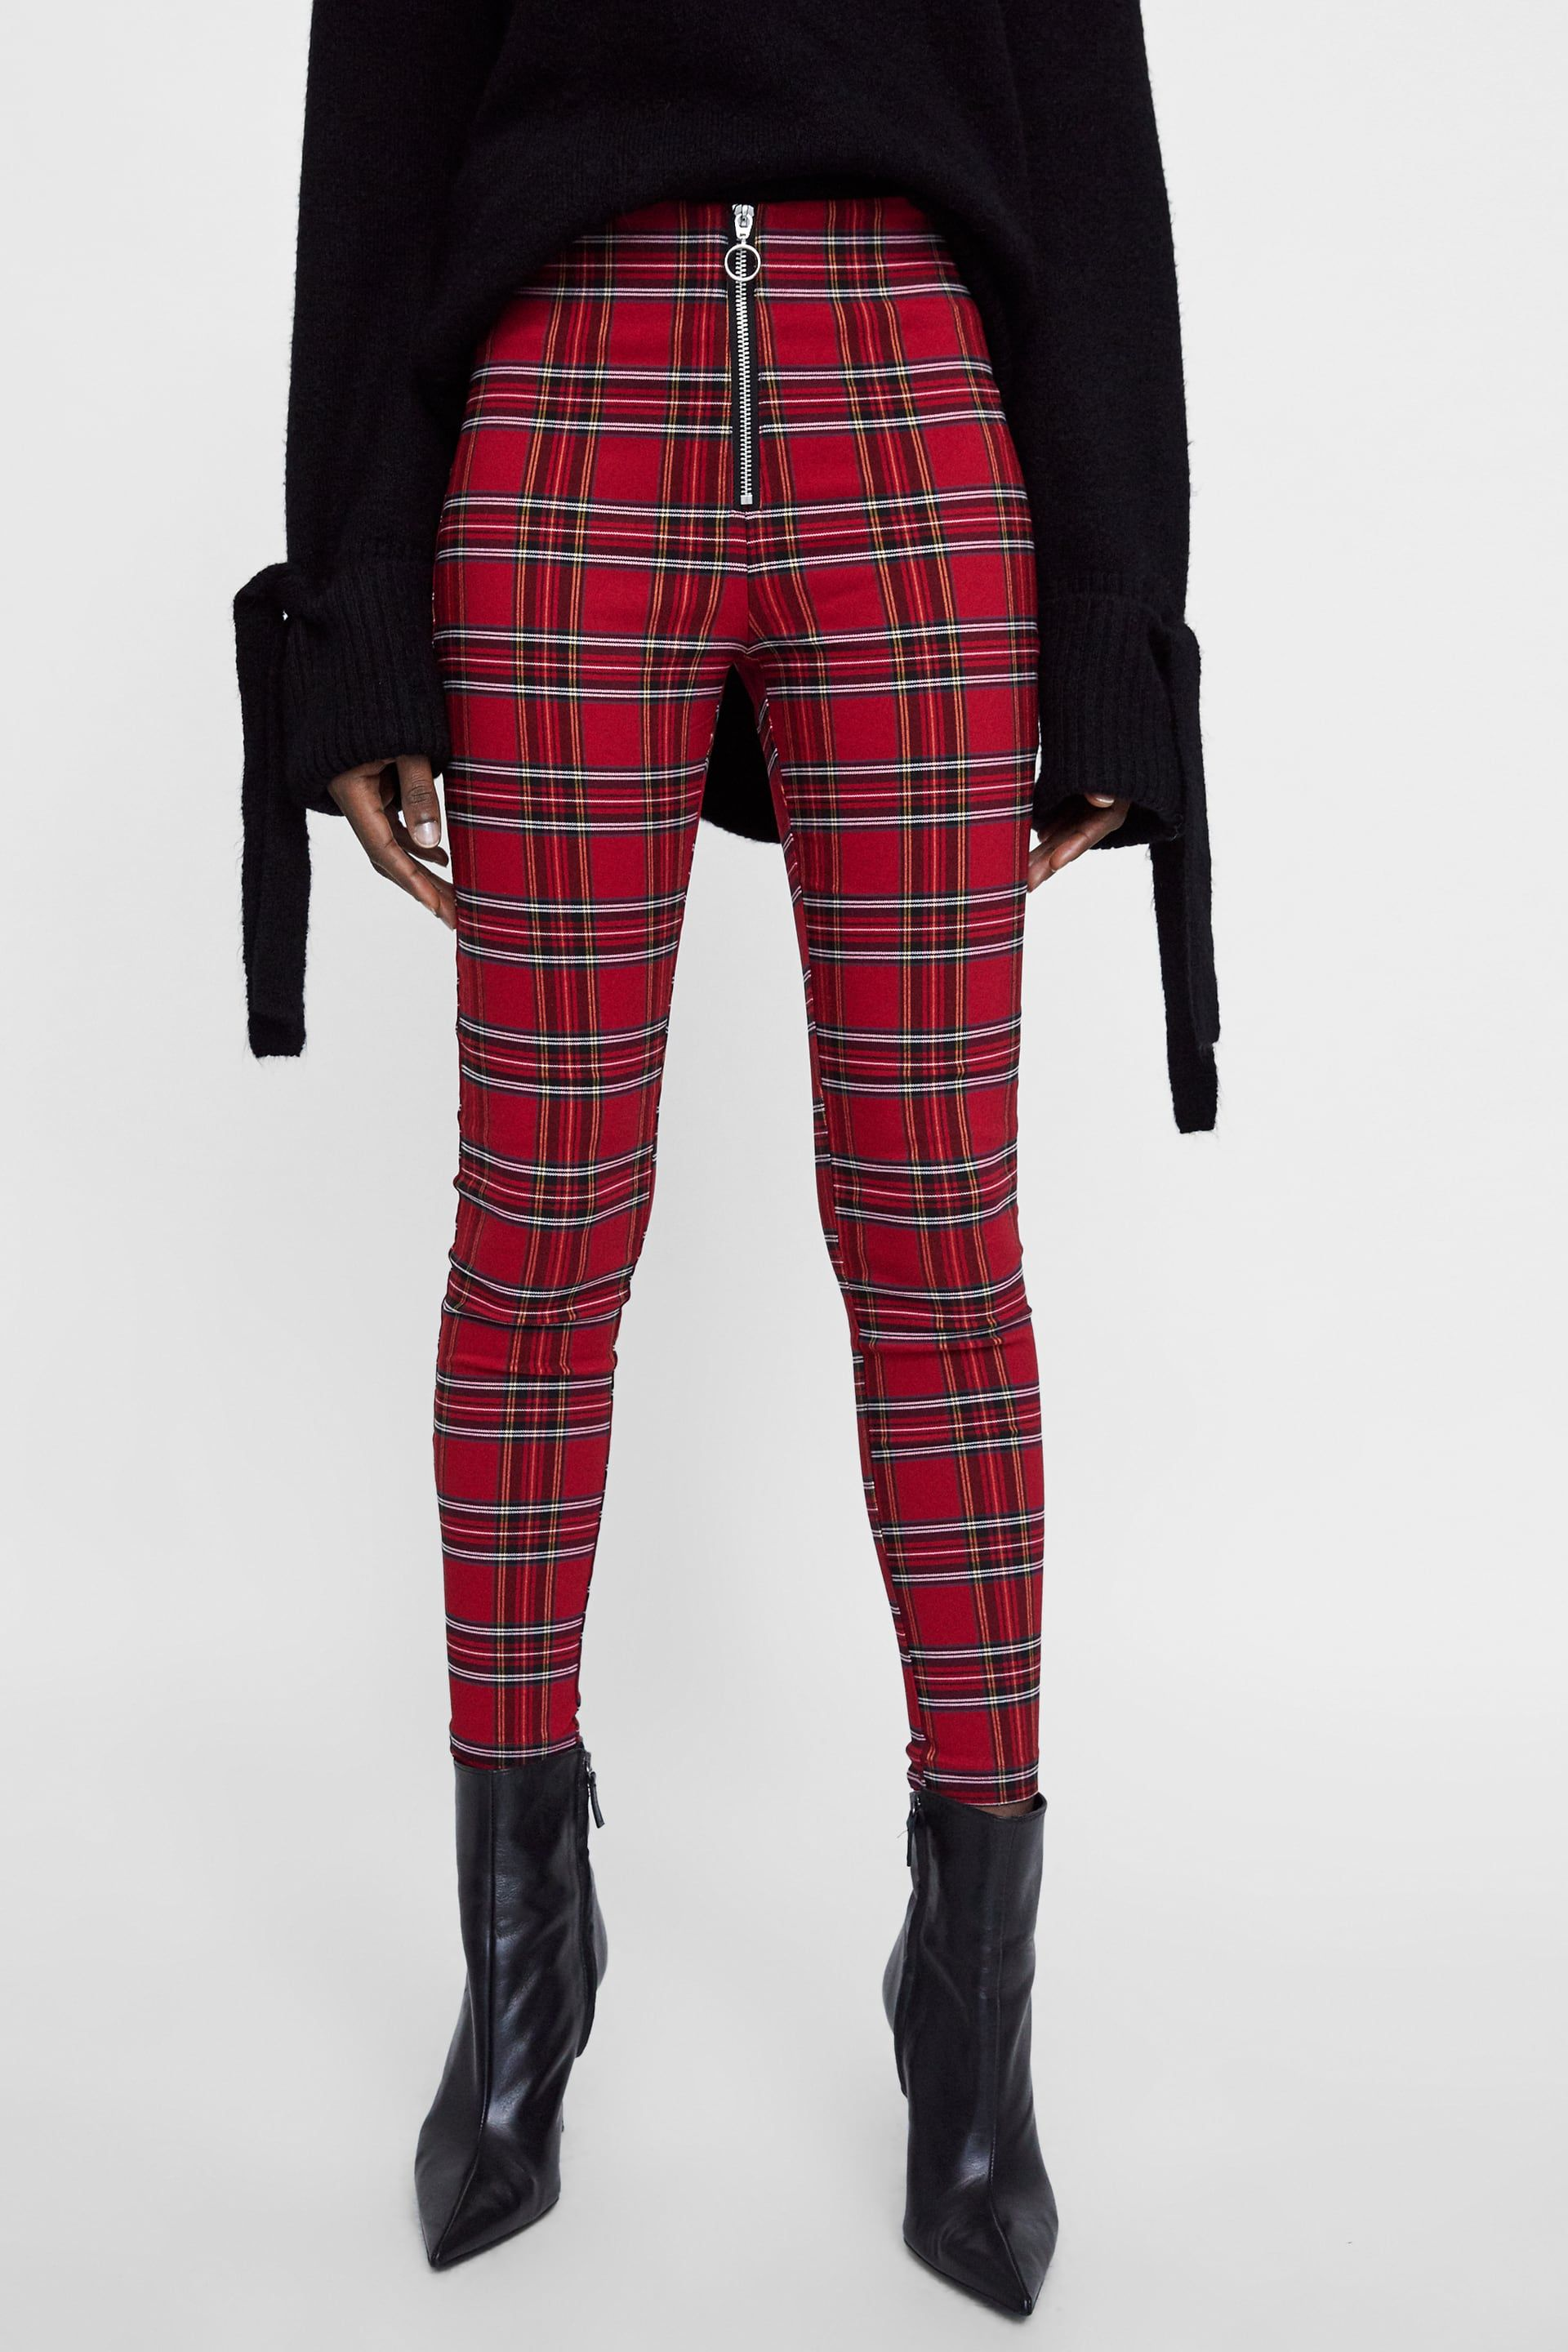 866951cfcd1a76 Image 2 of PLAID PANTS WITH ZIPPER from Zara | shopping spree ...